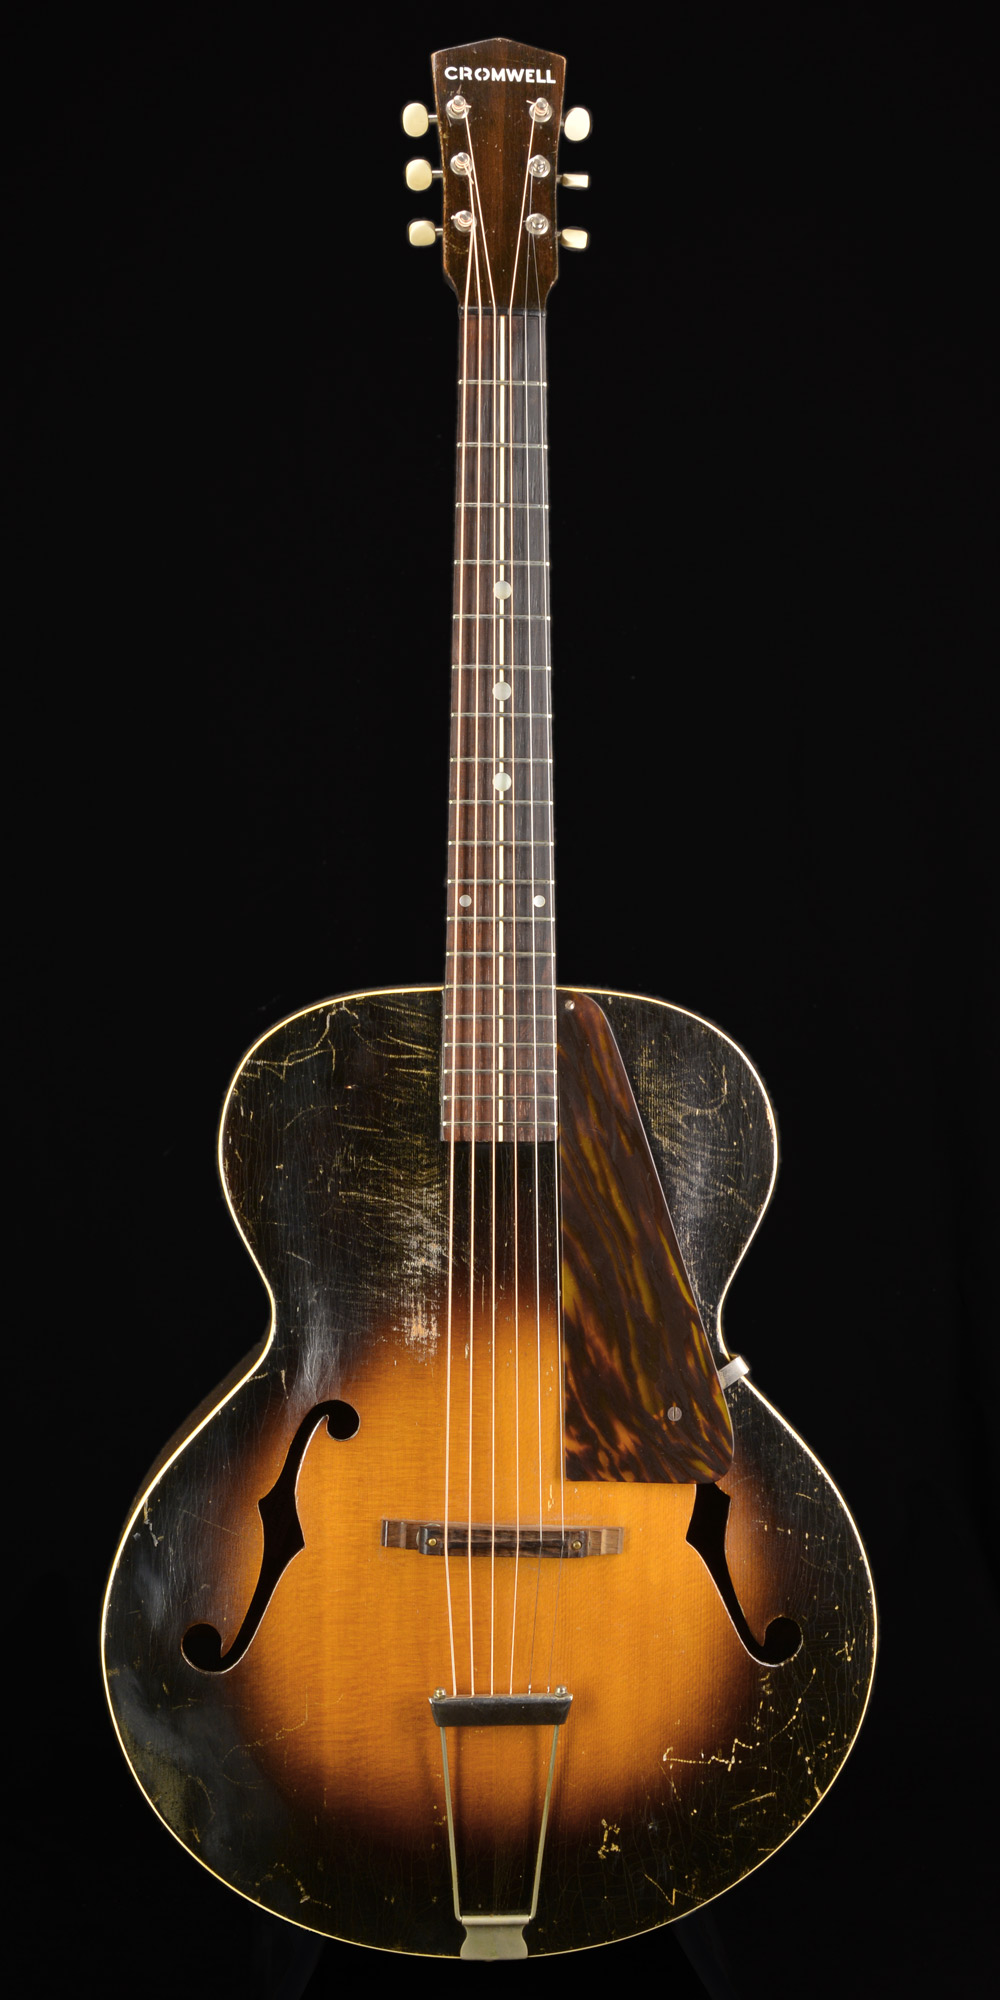 Photo of Cromwell G4 1936 Sunburst